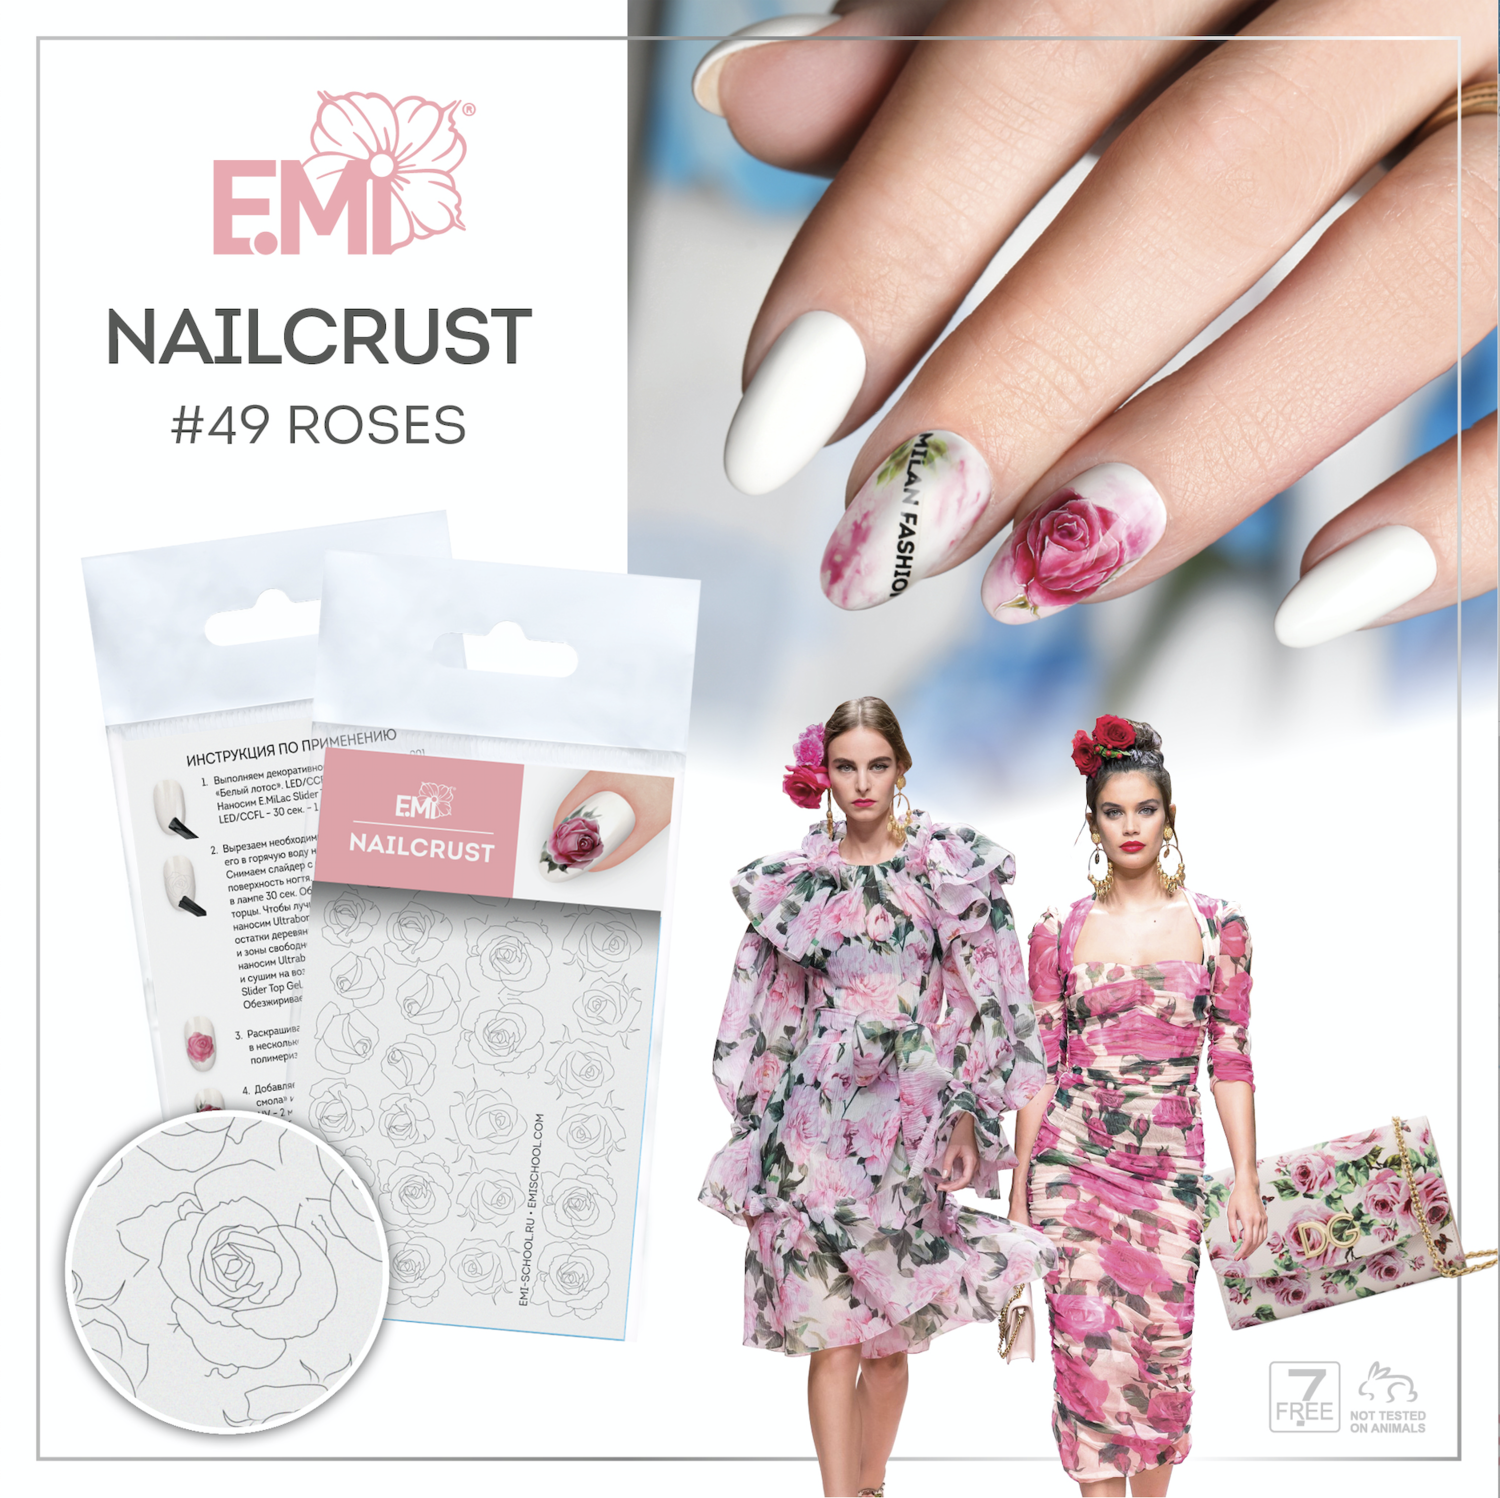 NAILCRUST Pattern Sliders #49 Roses